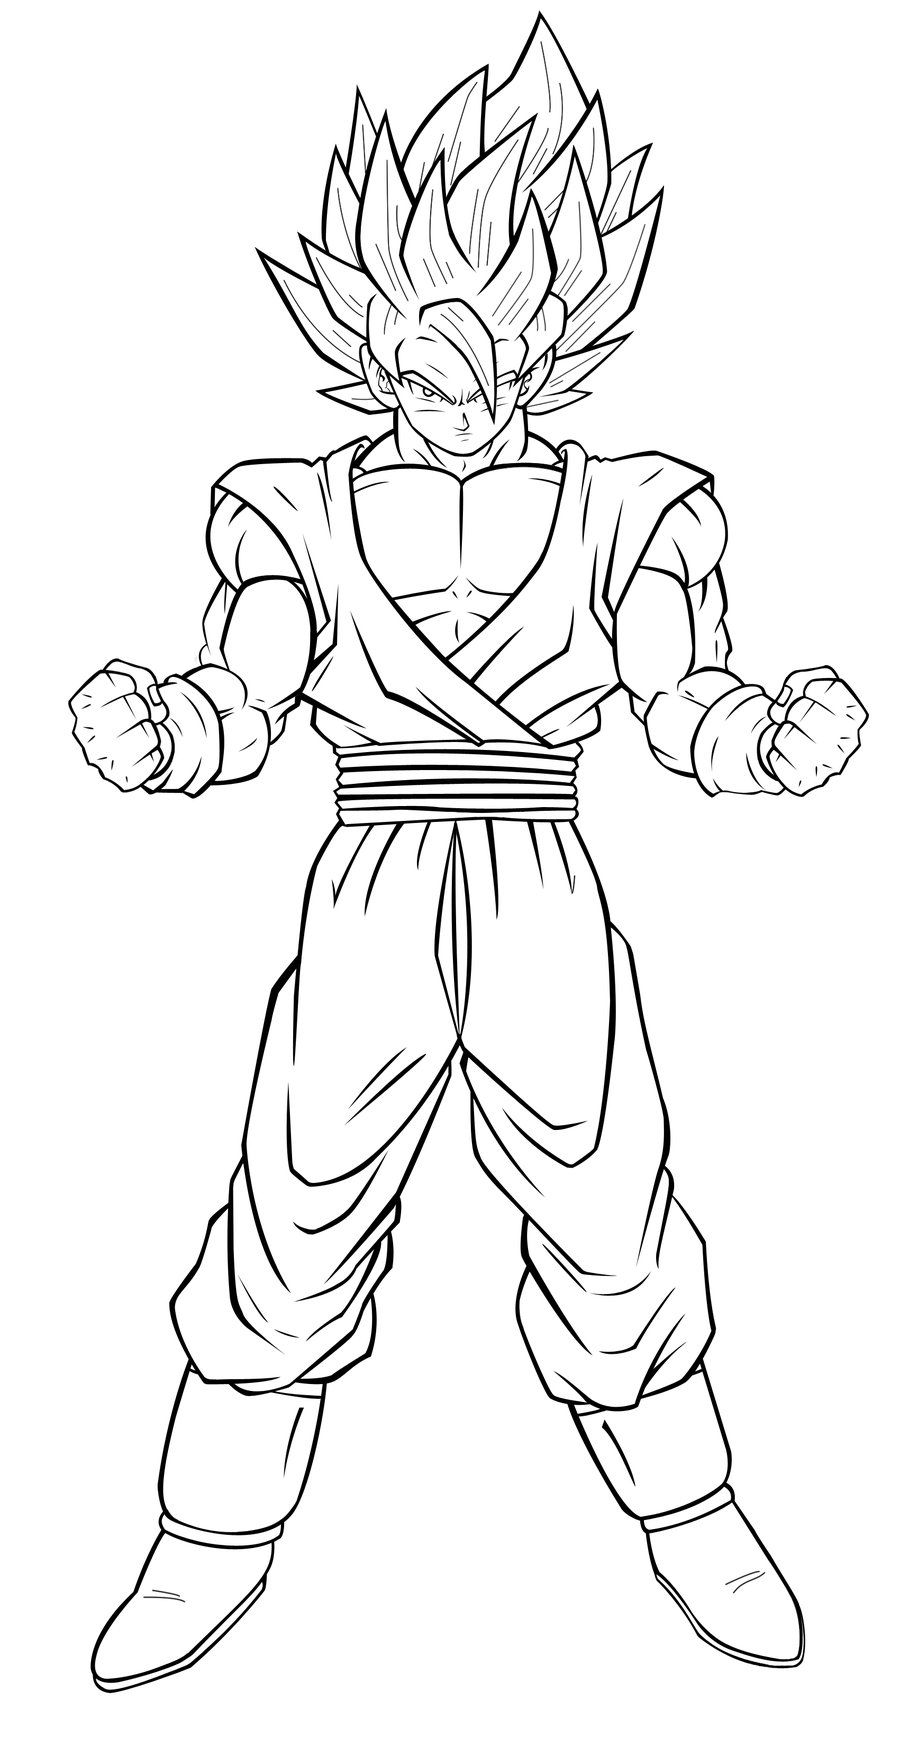 Coloriage dragon ball z sangoku super sayen 3 dragon ball z coloriage dragon ball coloriage - Dessin sangoku ...